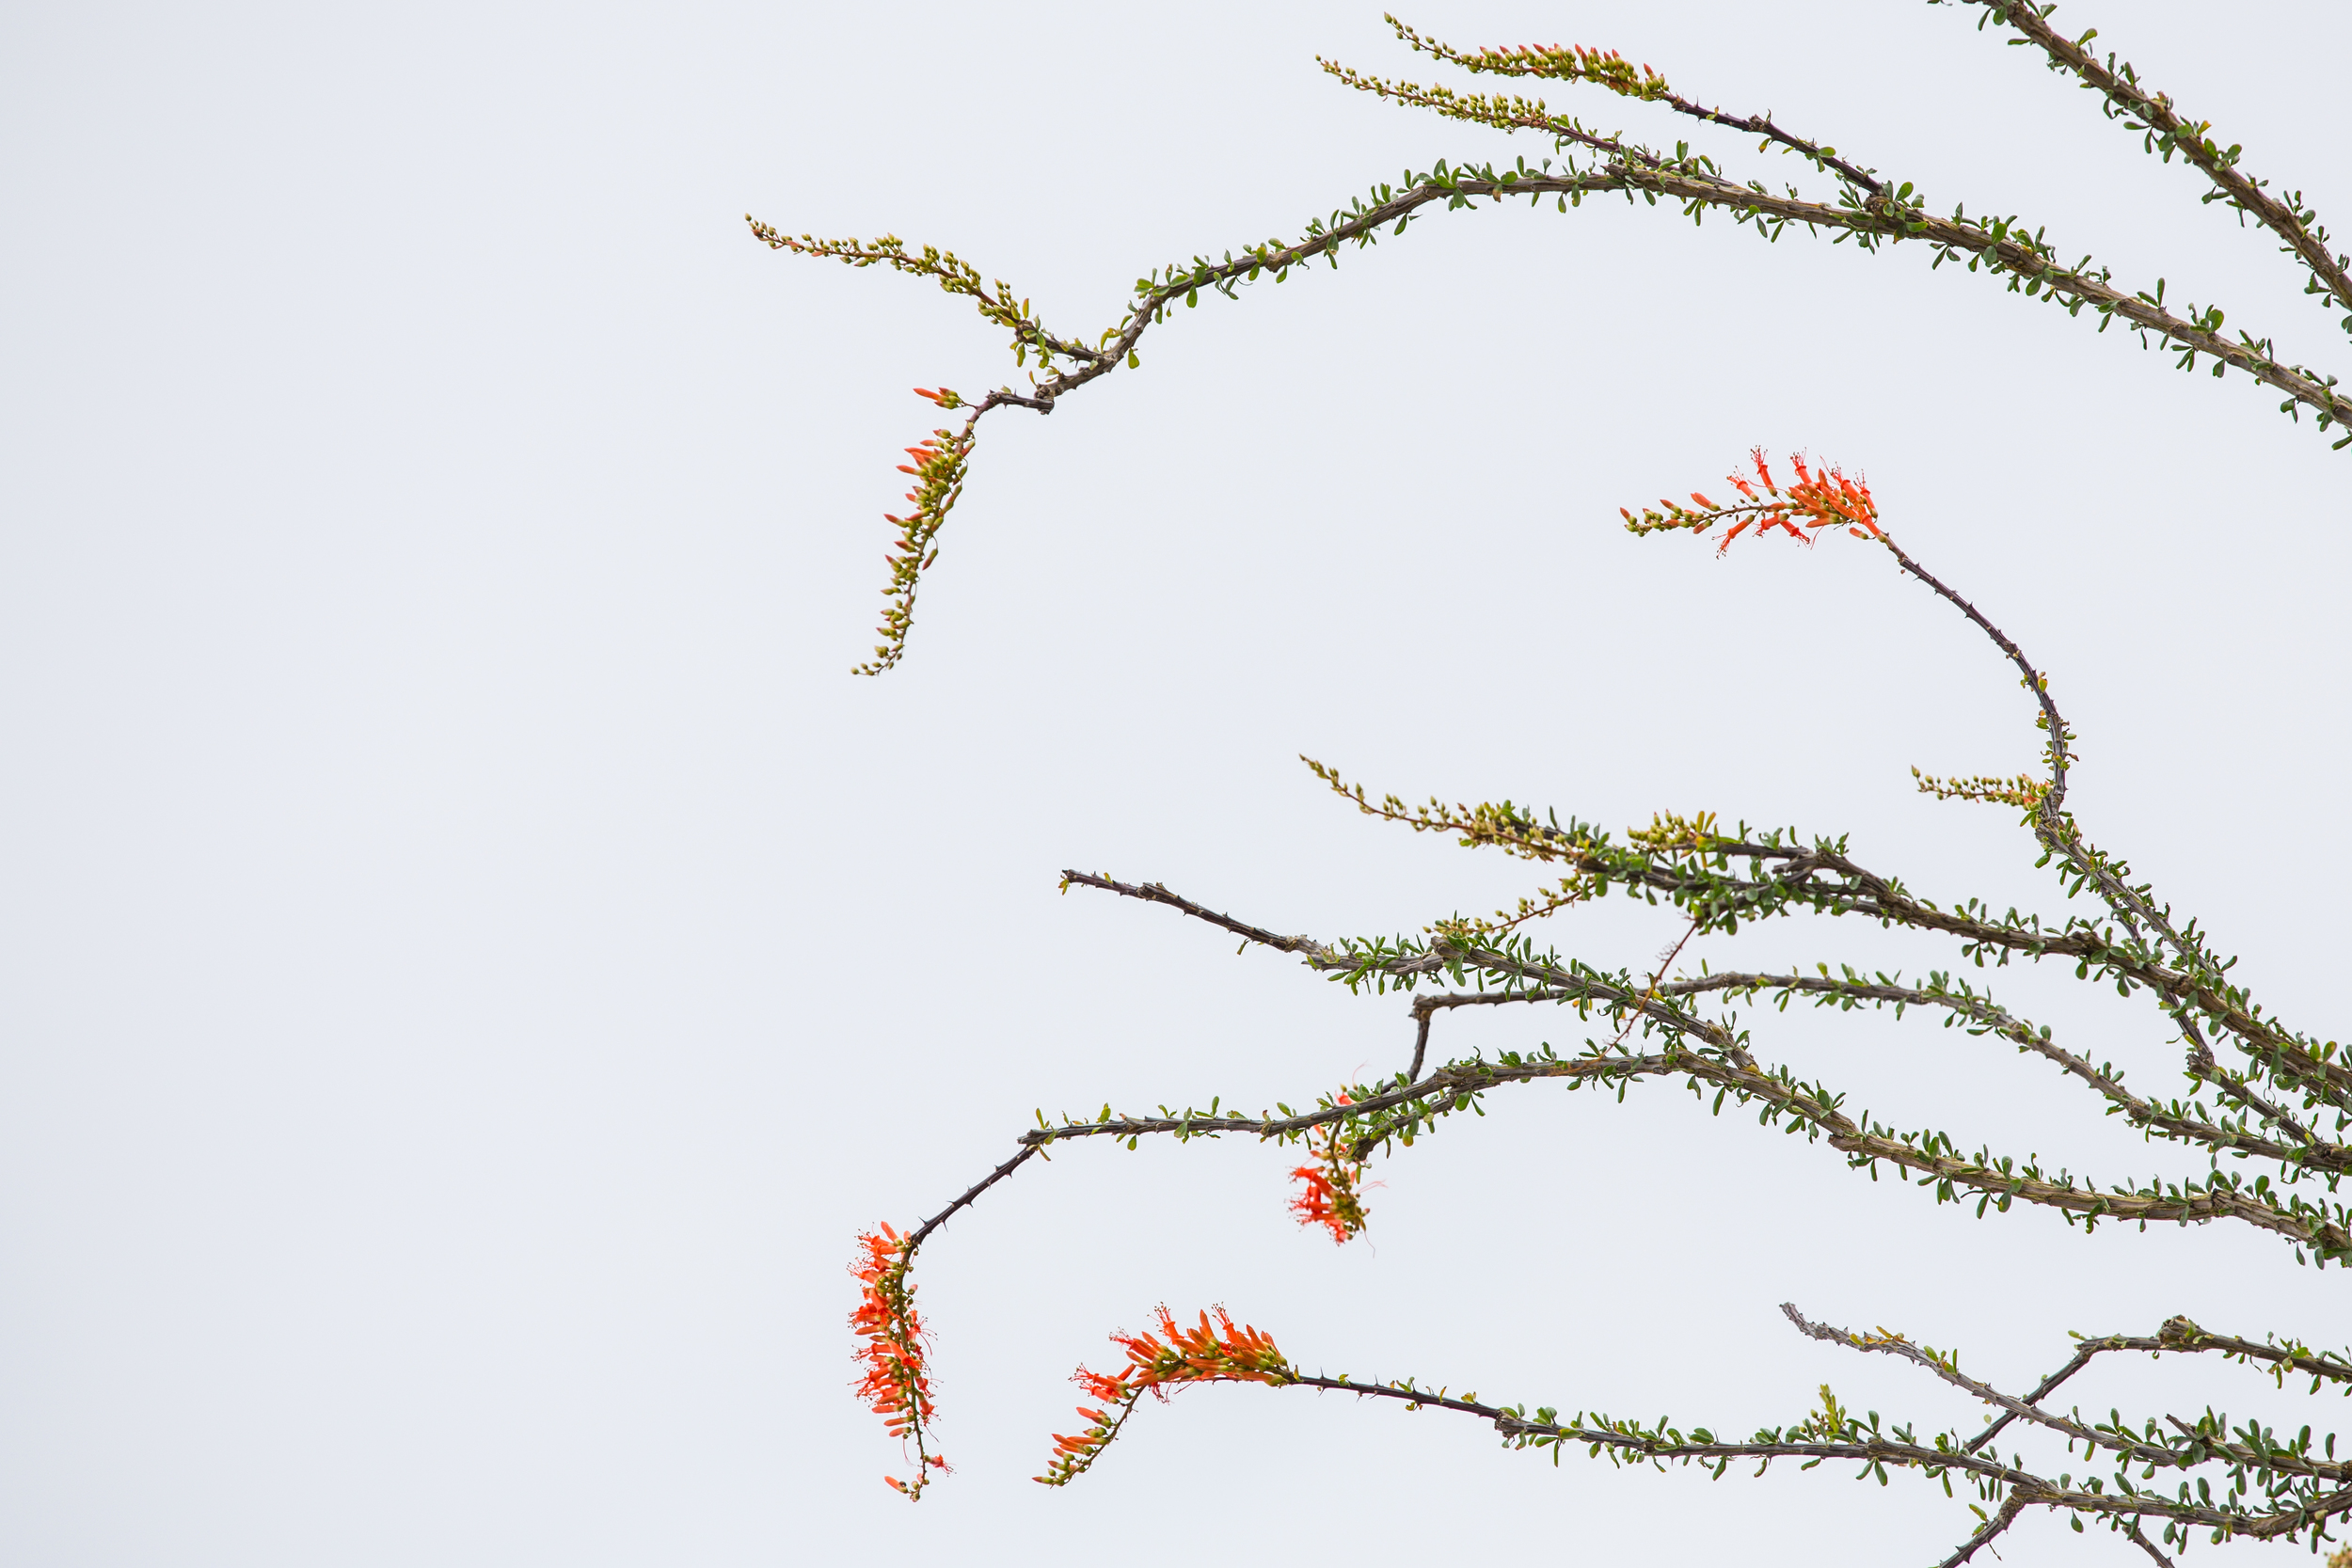 Ocotillo Plant in Bloom